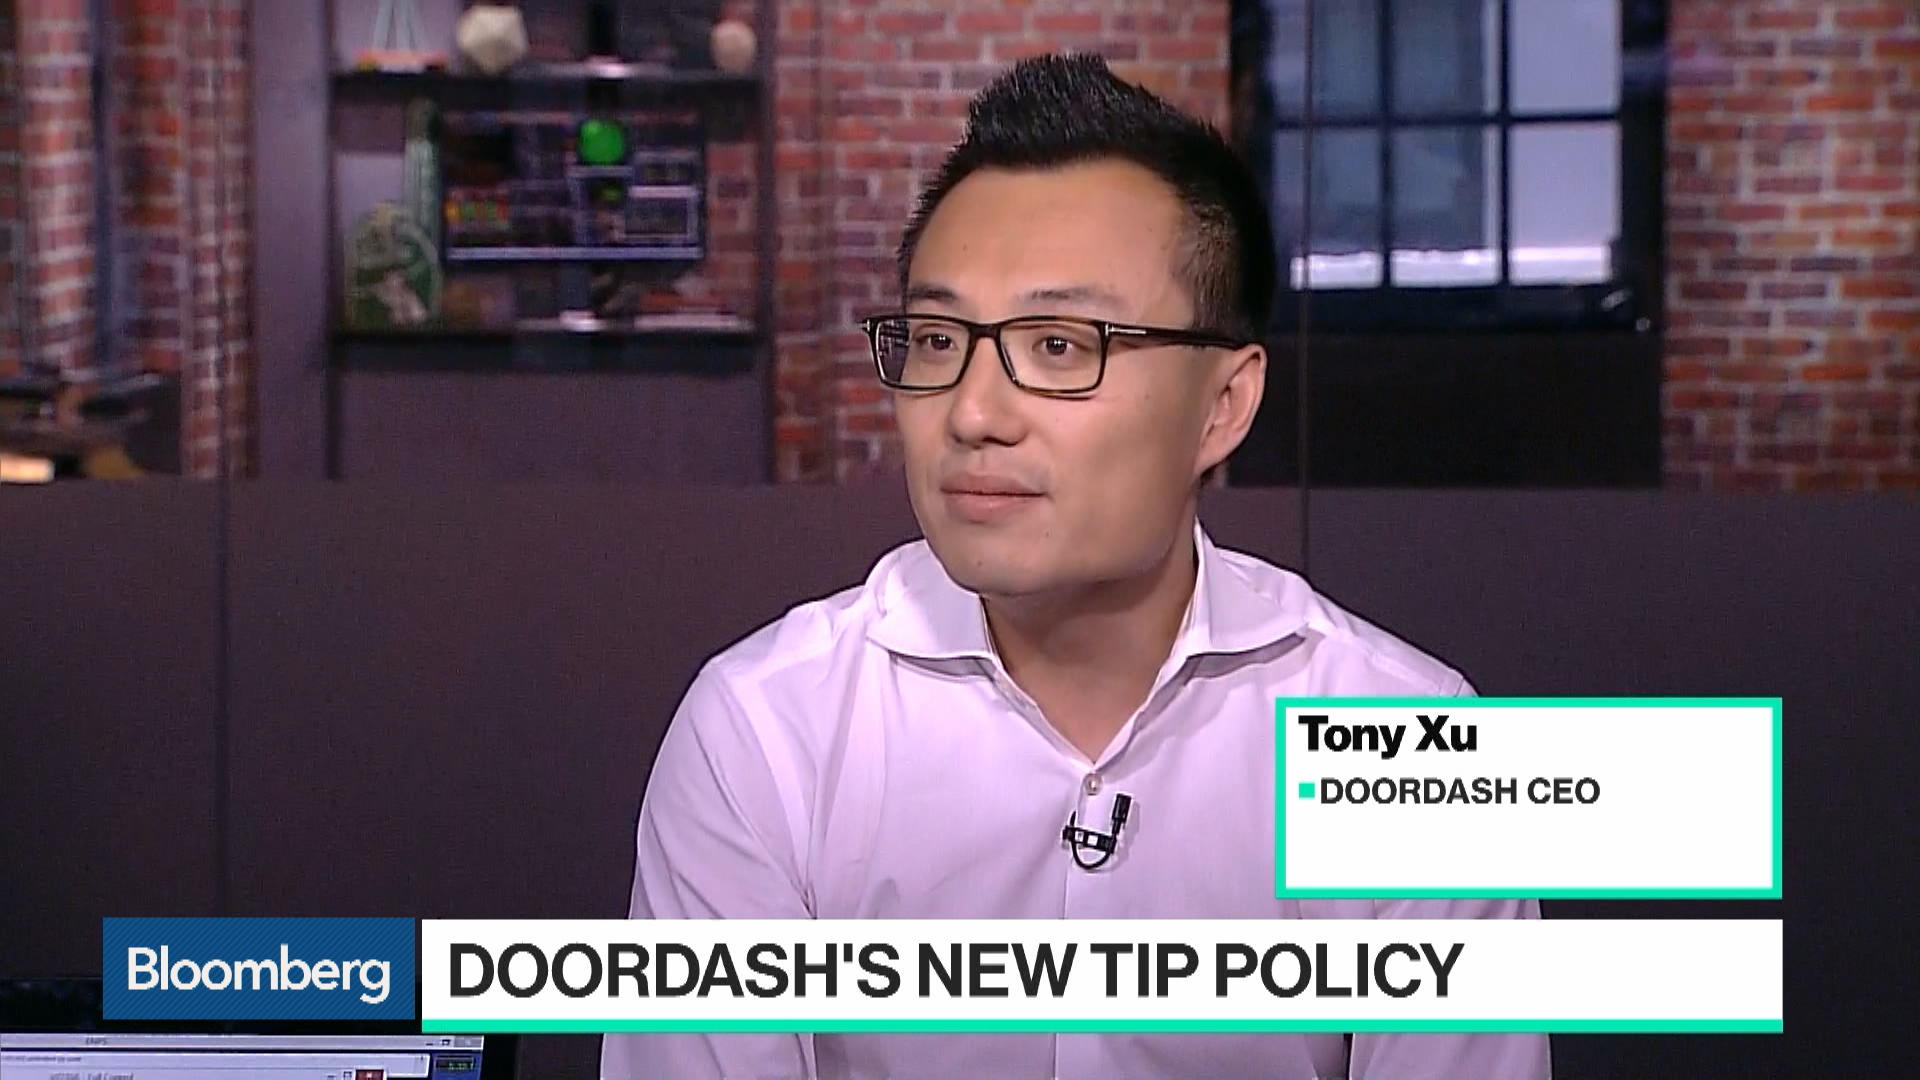 DoorDash CEO Tony Xu Outlines New Tip, Driver Pay Policy